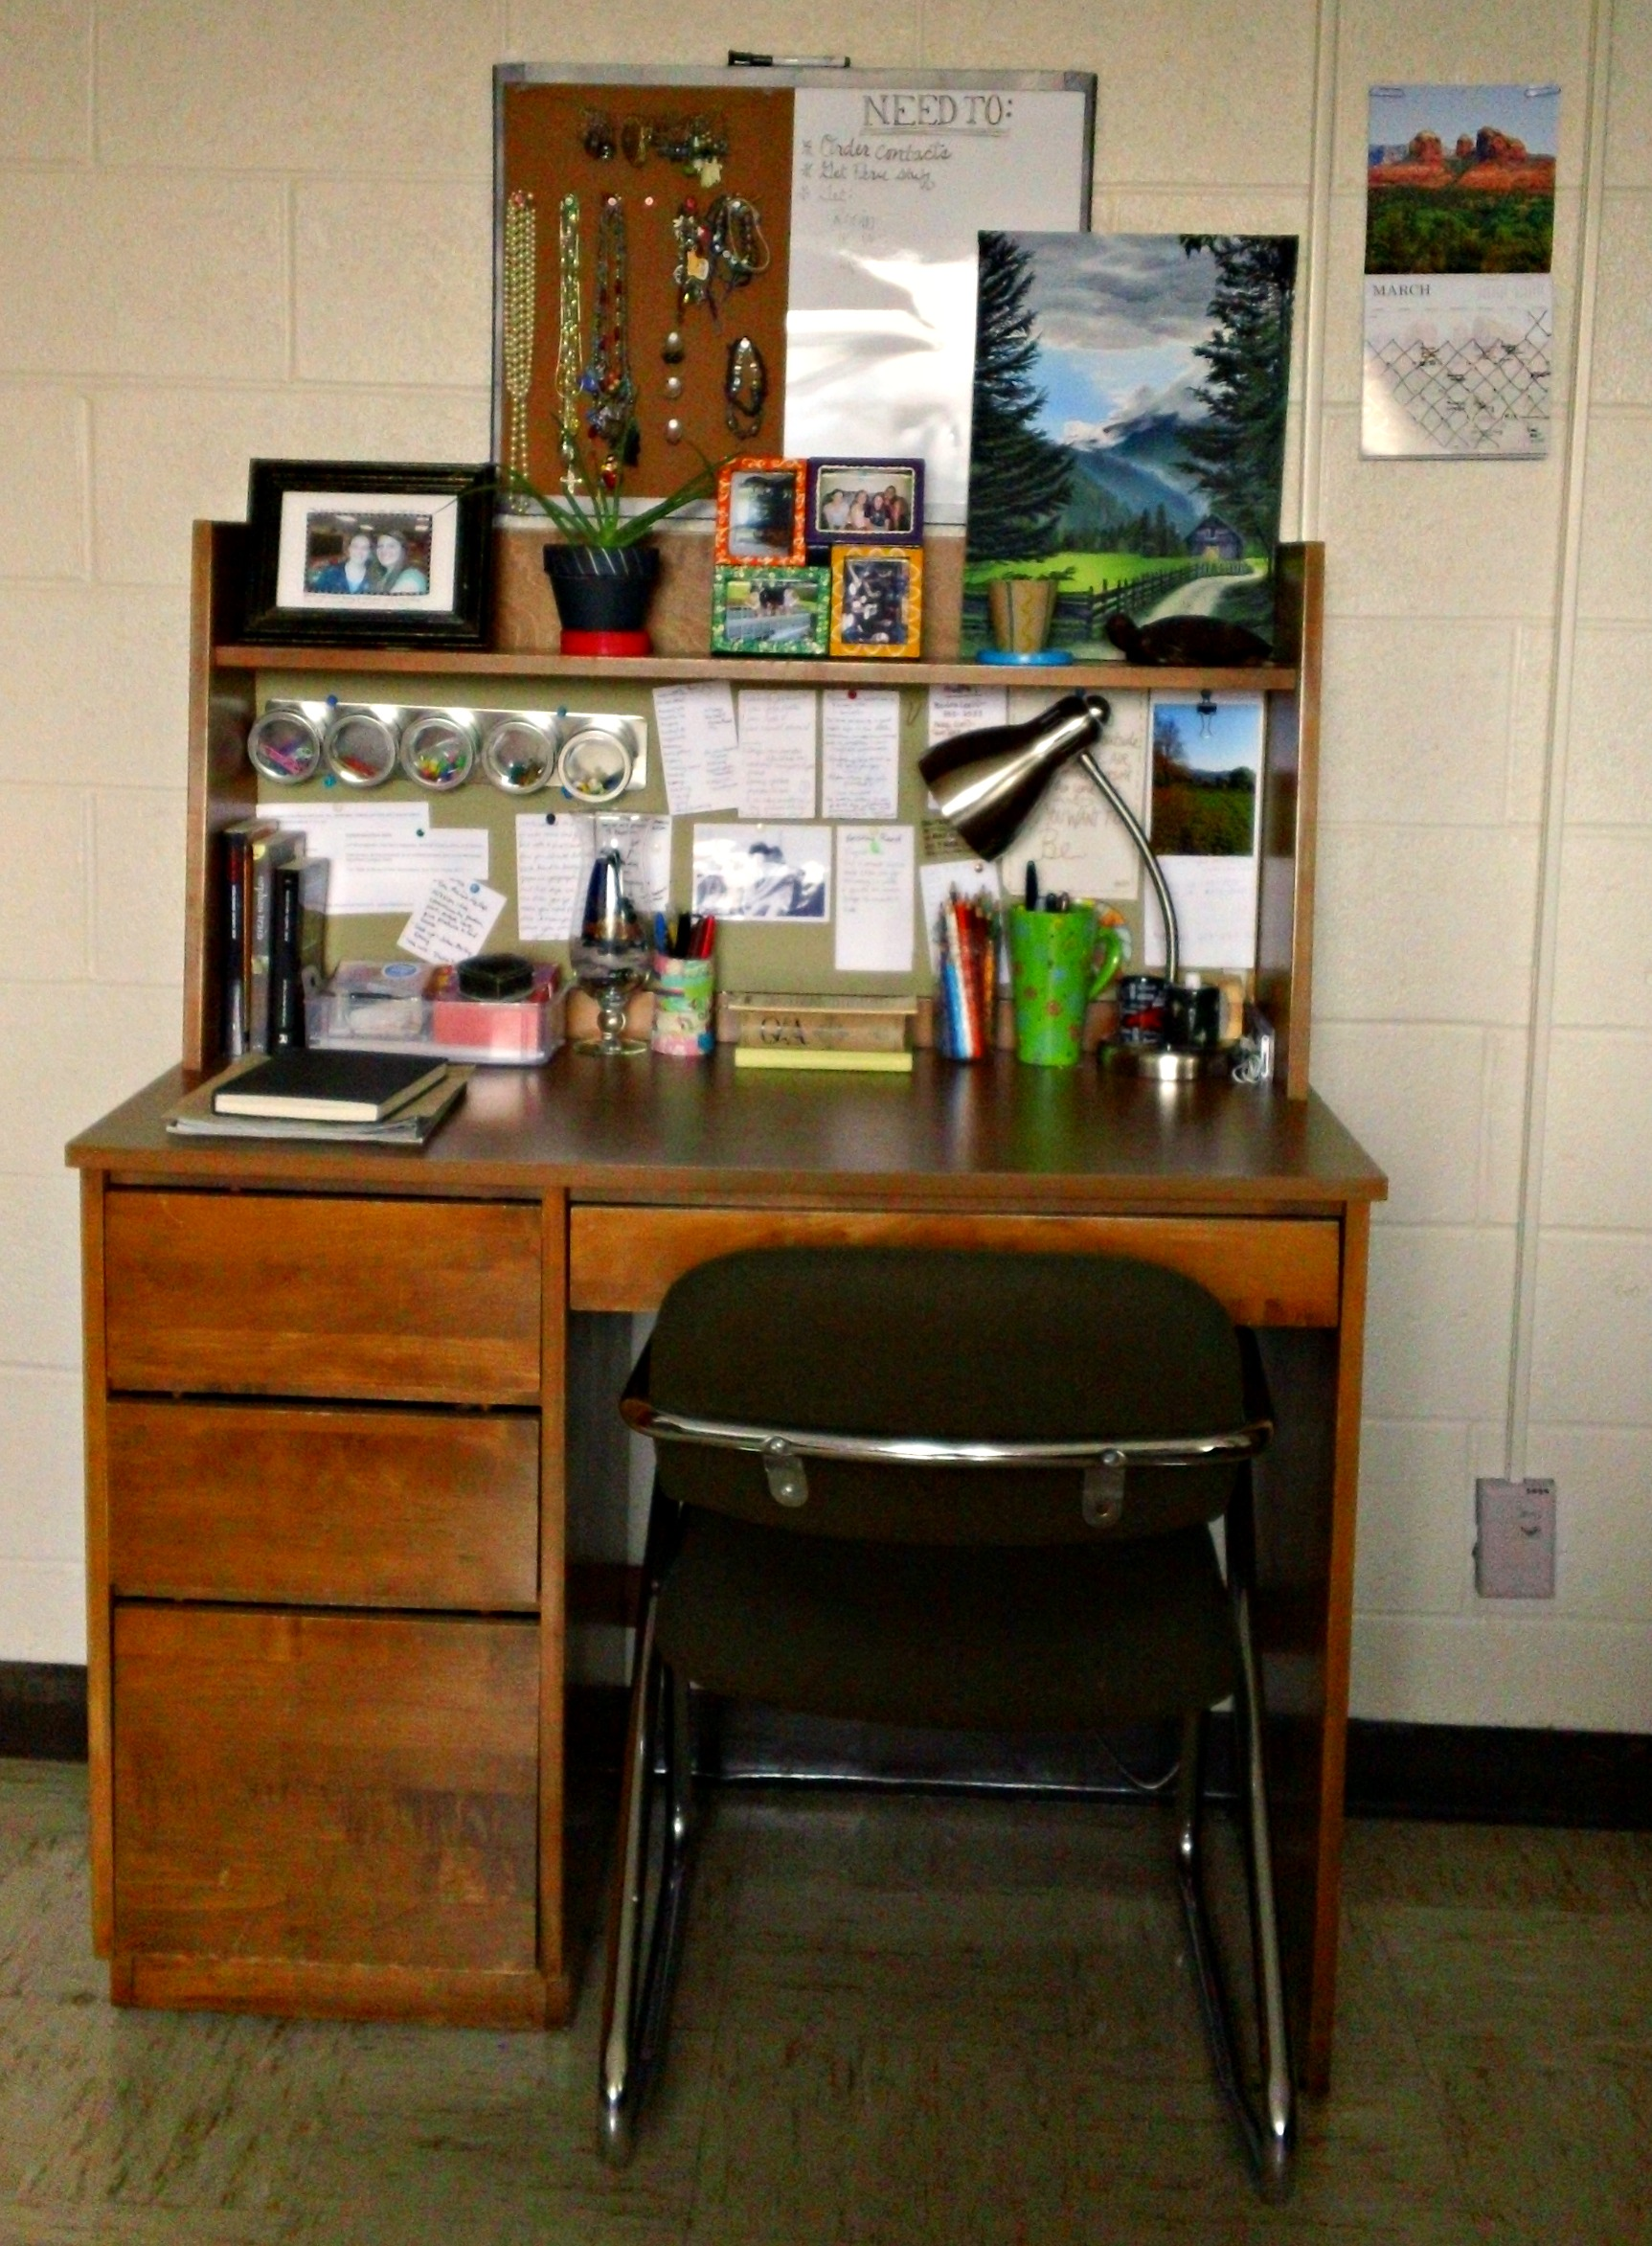 Dorm Room Update Desk Area And Wall Decorations The Oke Den